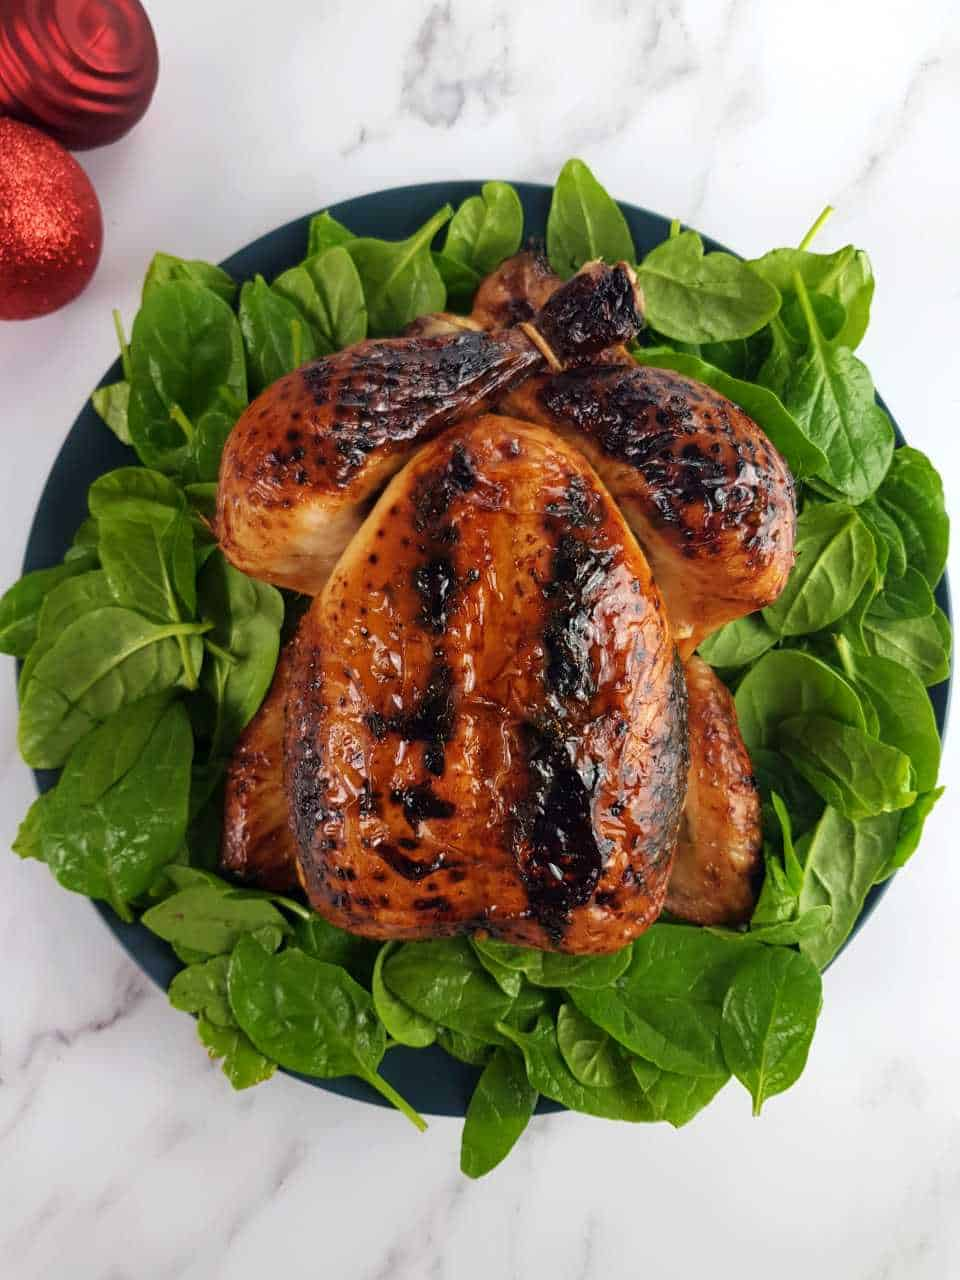 Roast chicken in honey on a bed of spinach on a marble table.